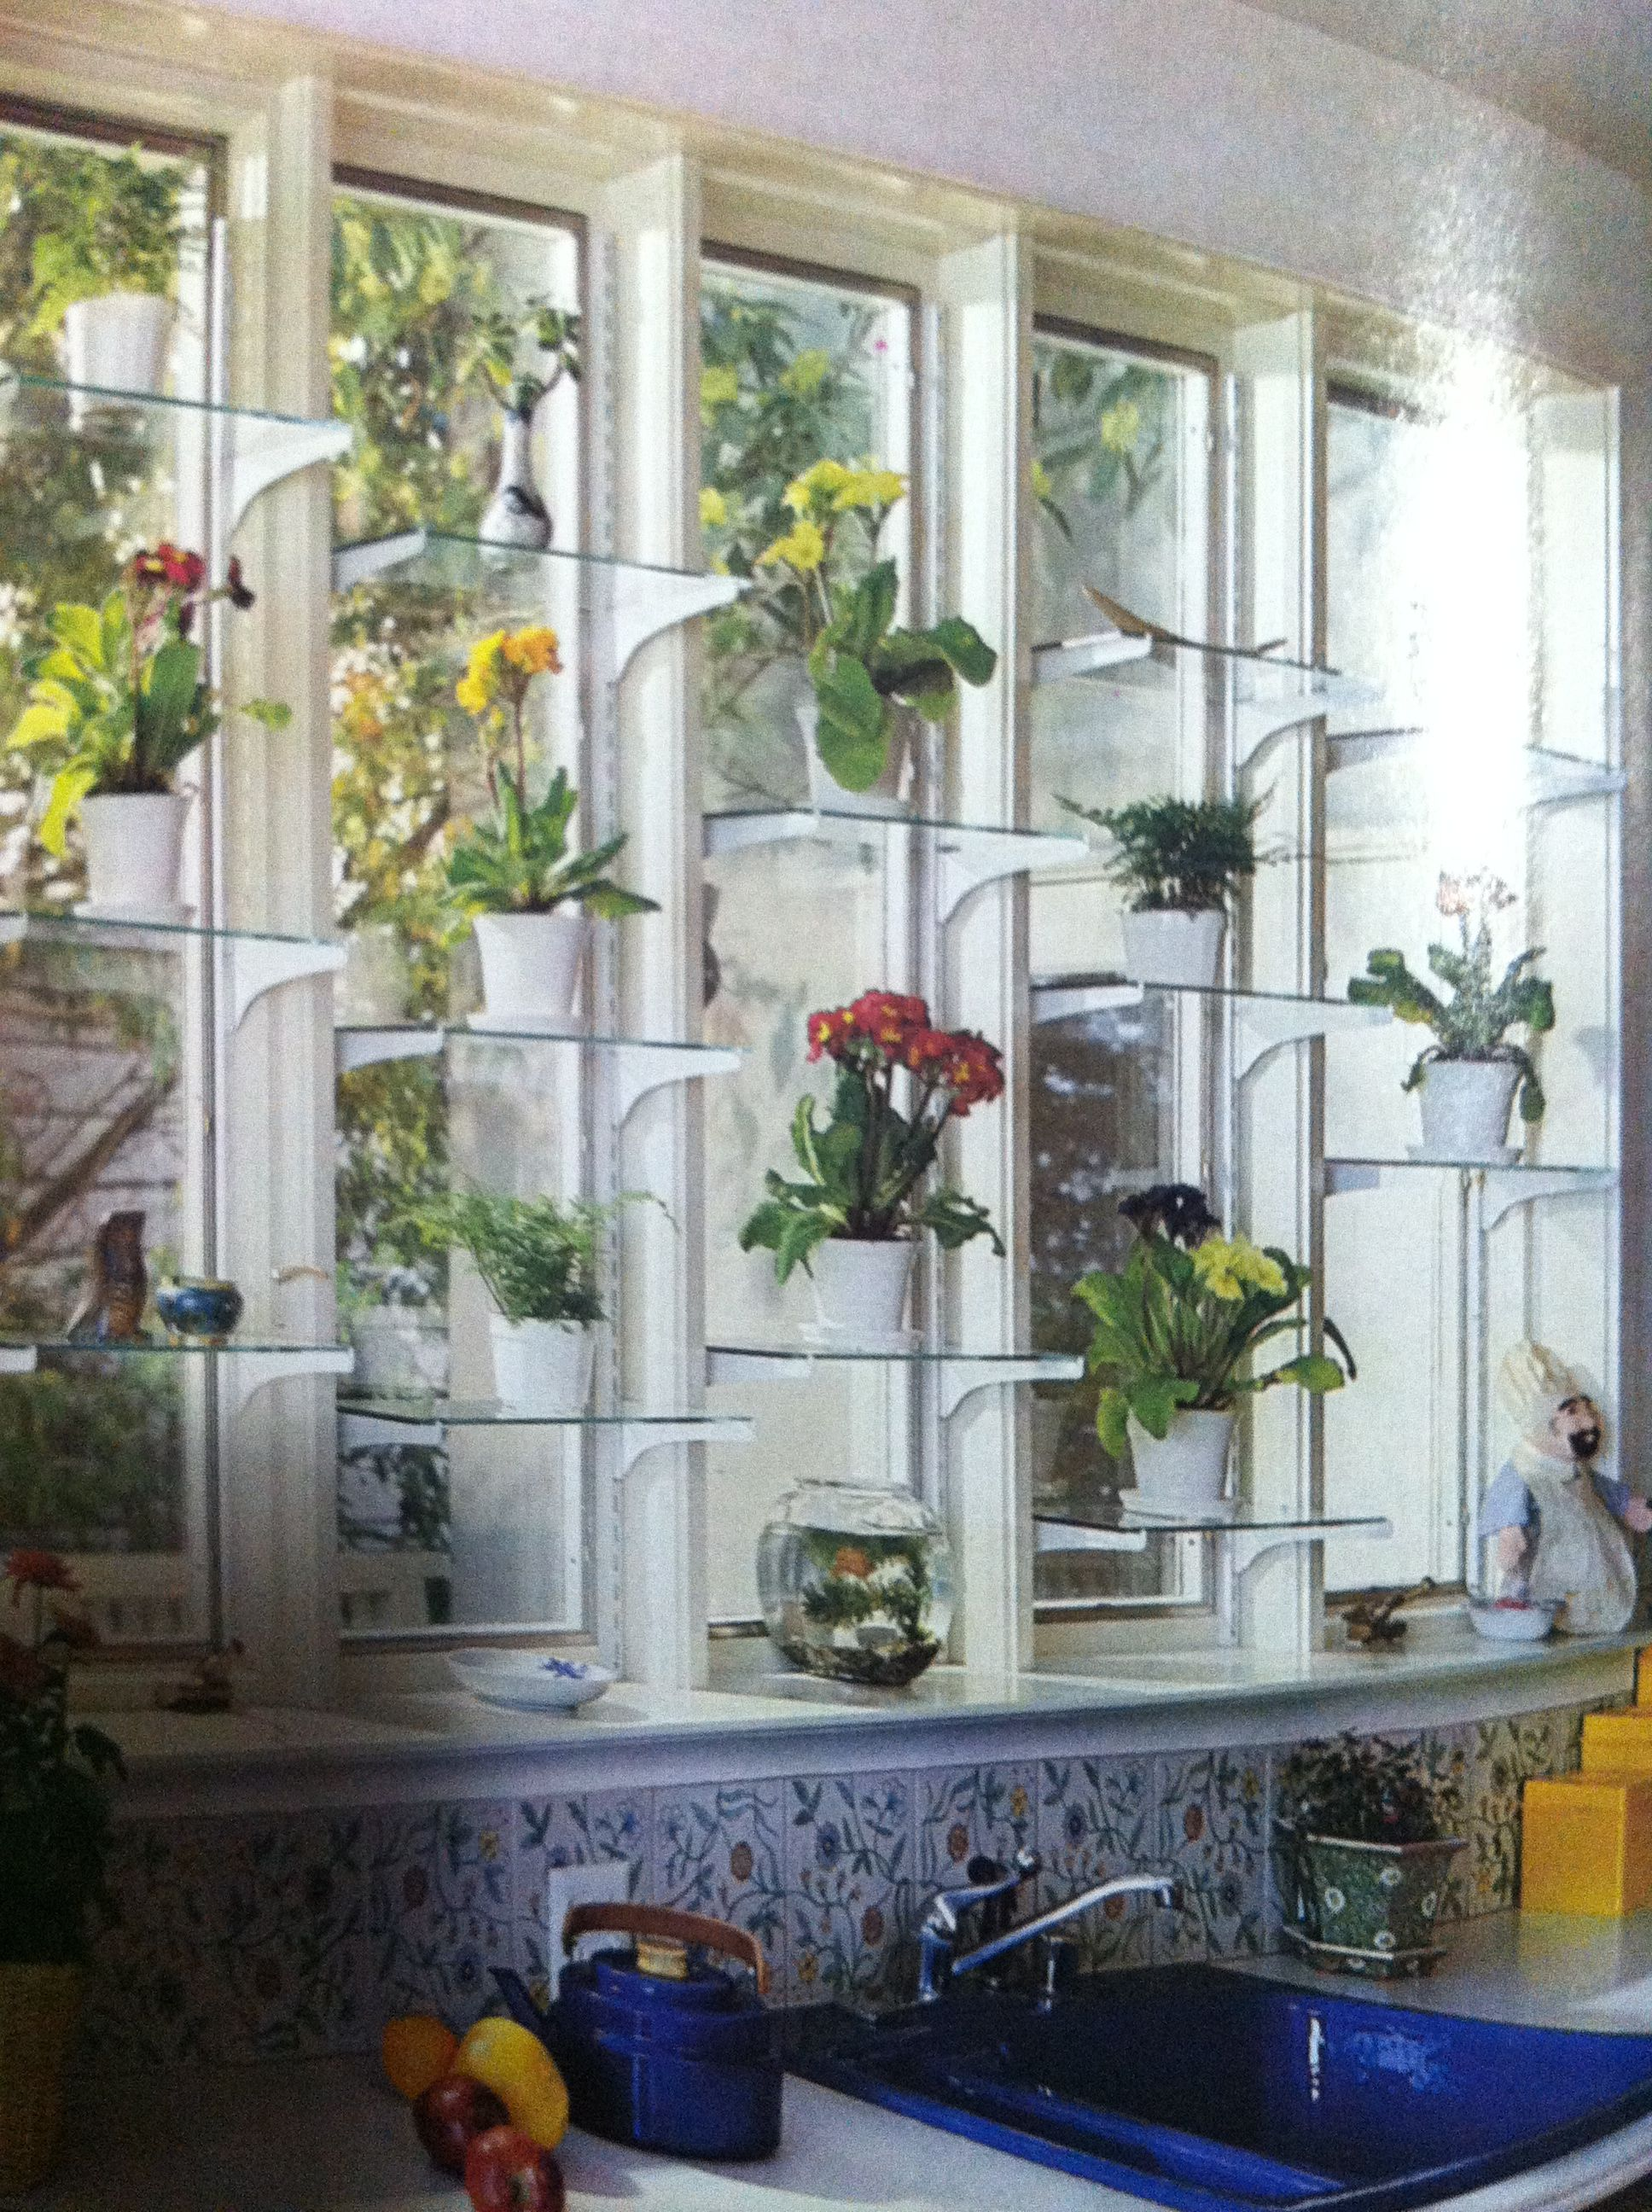 Glass window shelves for plants indoor window plants - How to hang plants in front of windows ...